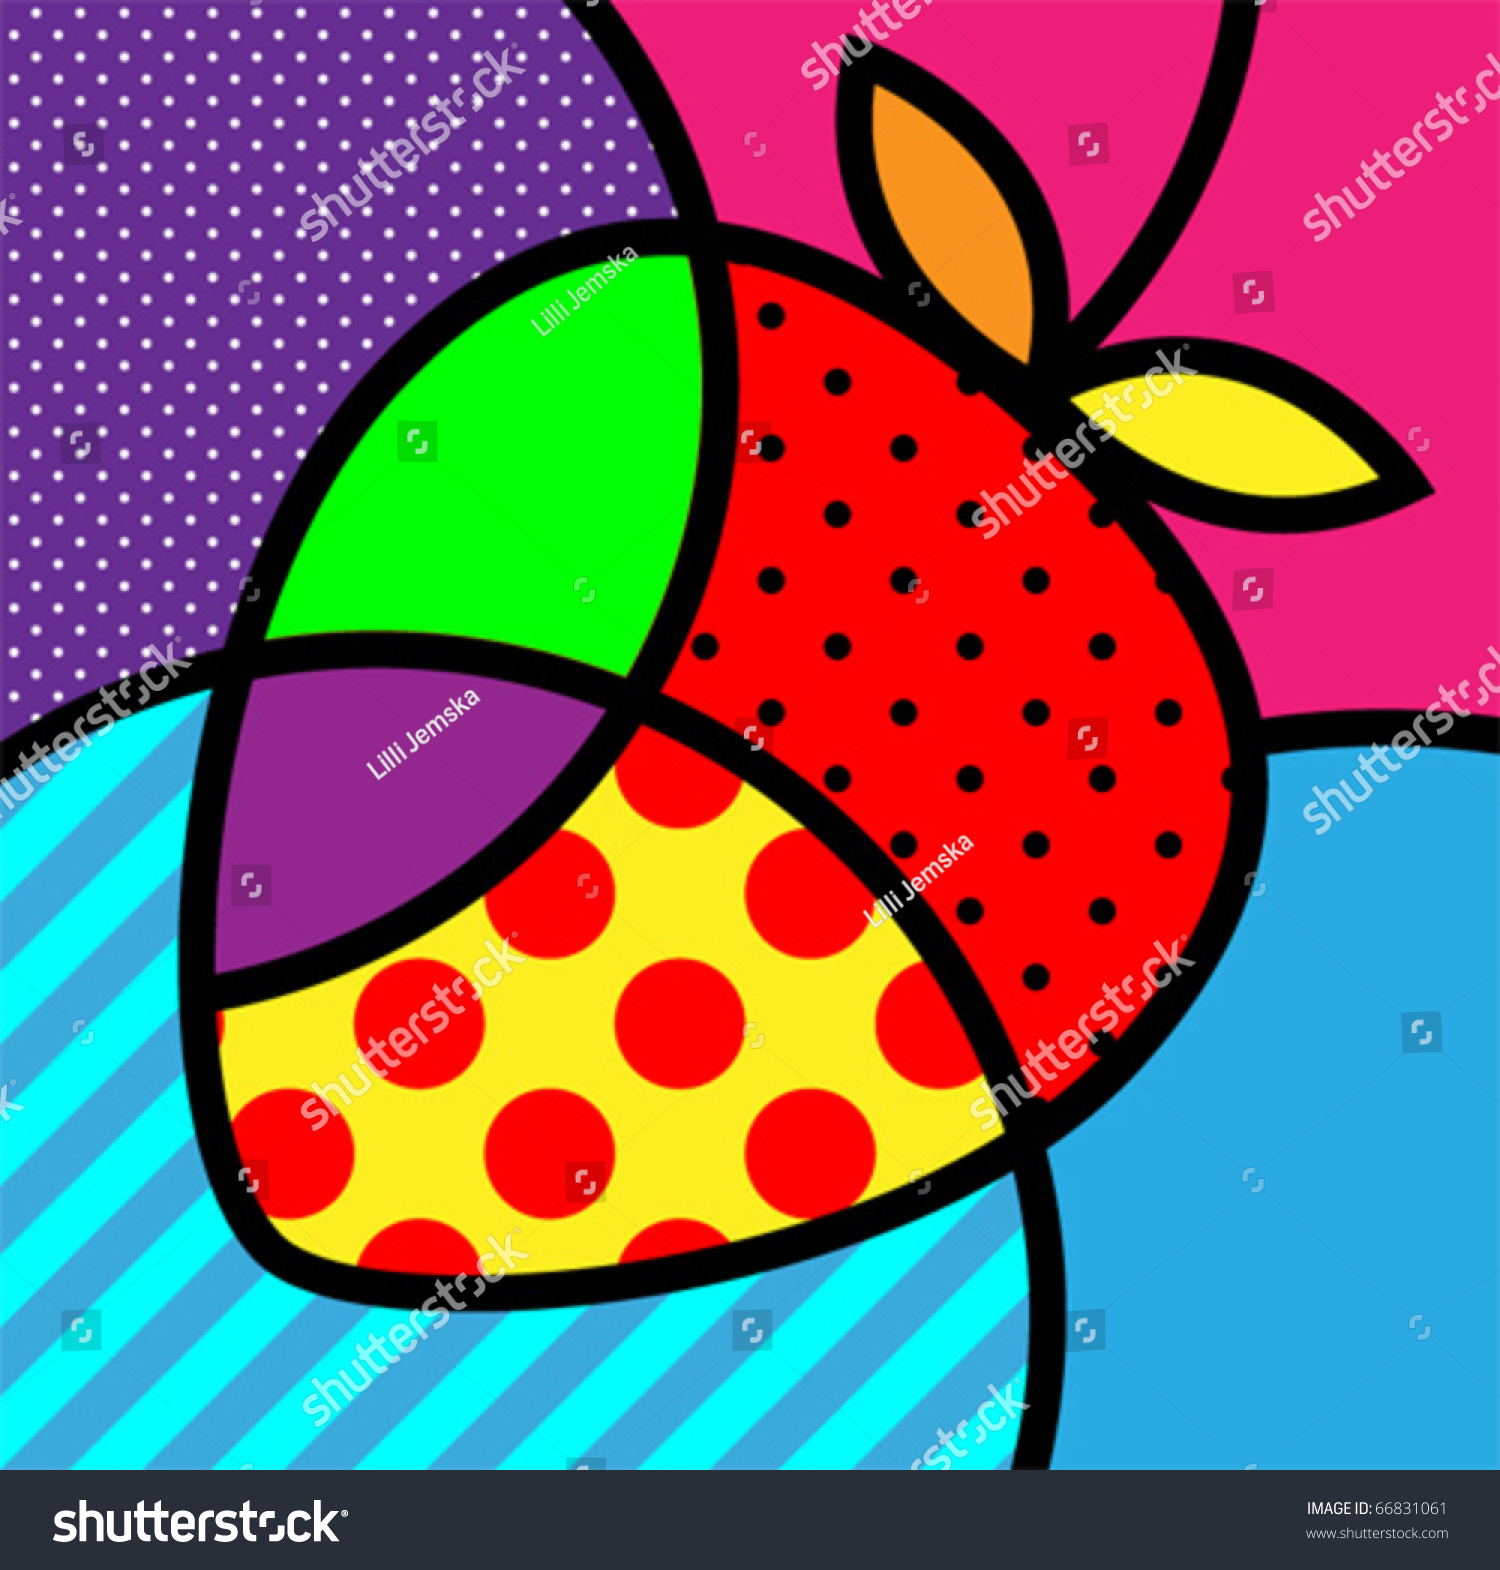 strawberry popart fruits vector illustration design stock vector 66831061 shutterstock. Black Bedroom Furniture Sets. Home Design Ideas